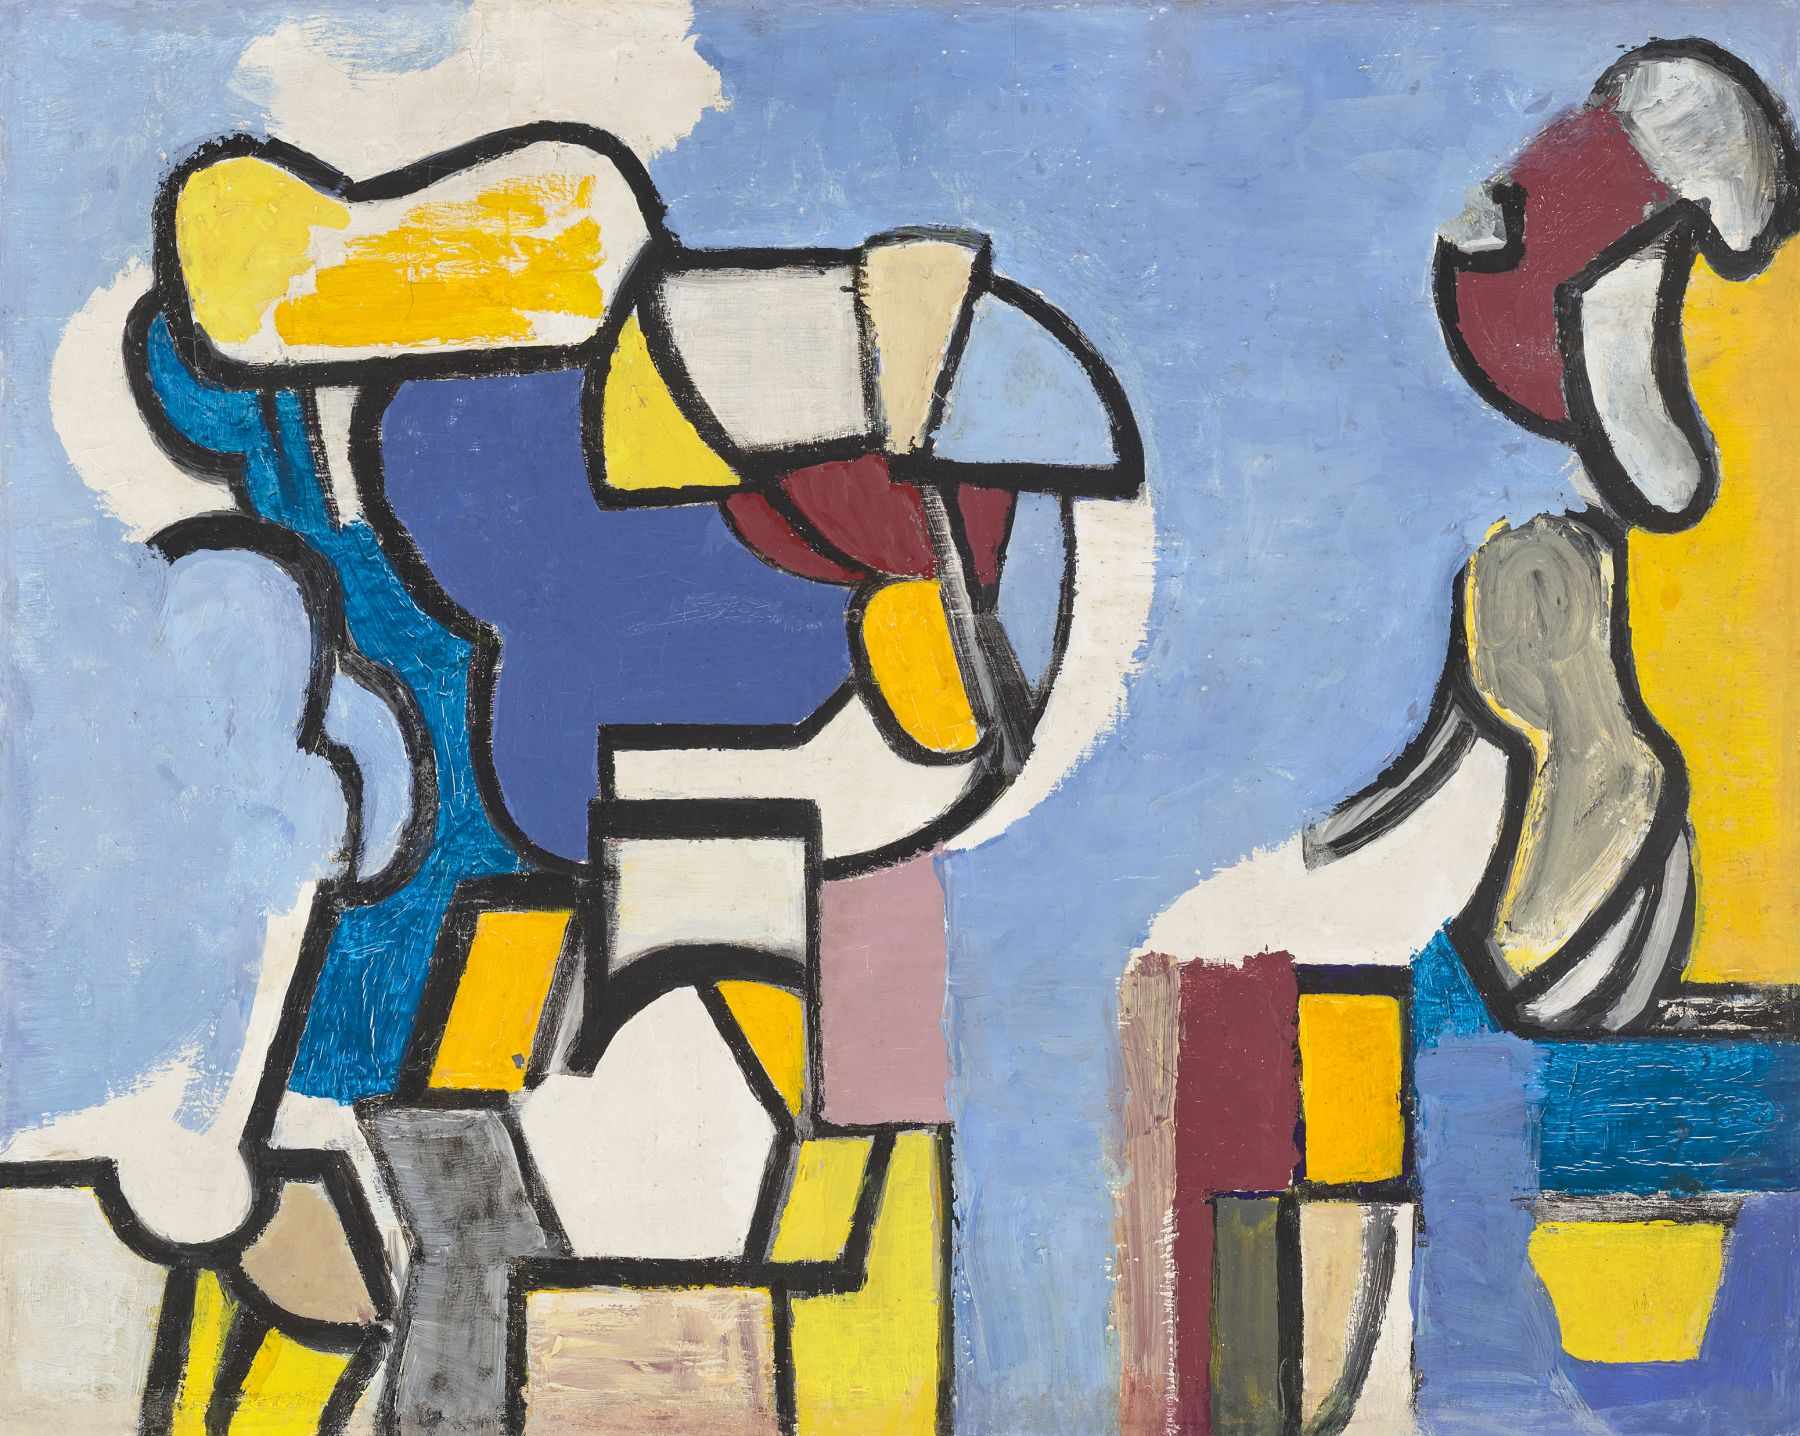 Nell Blaine (1922-1996) Abstraction, 1948–9